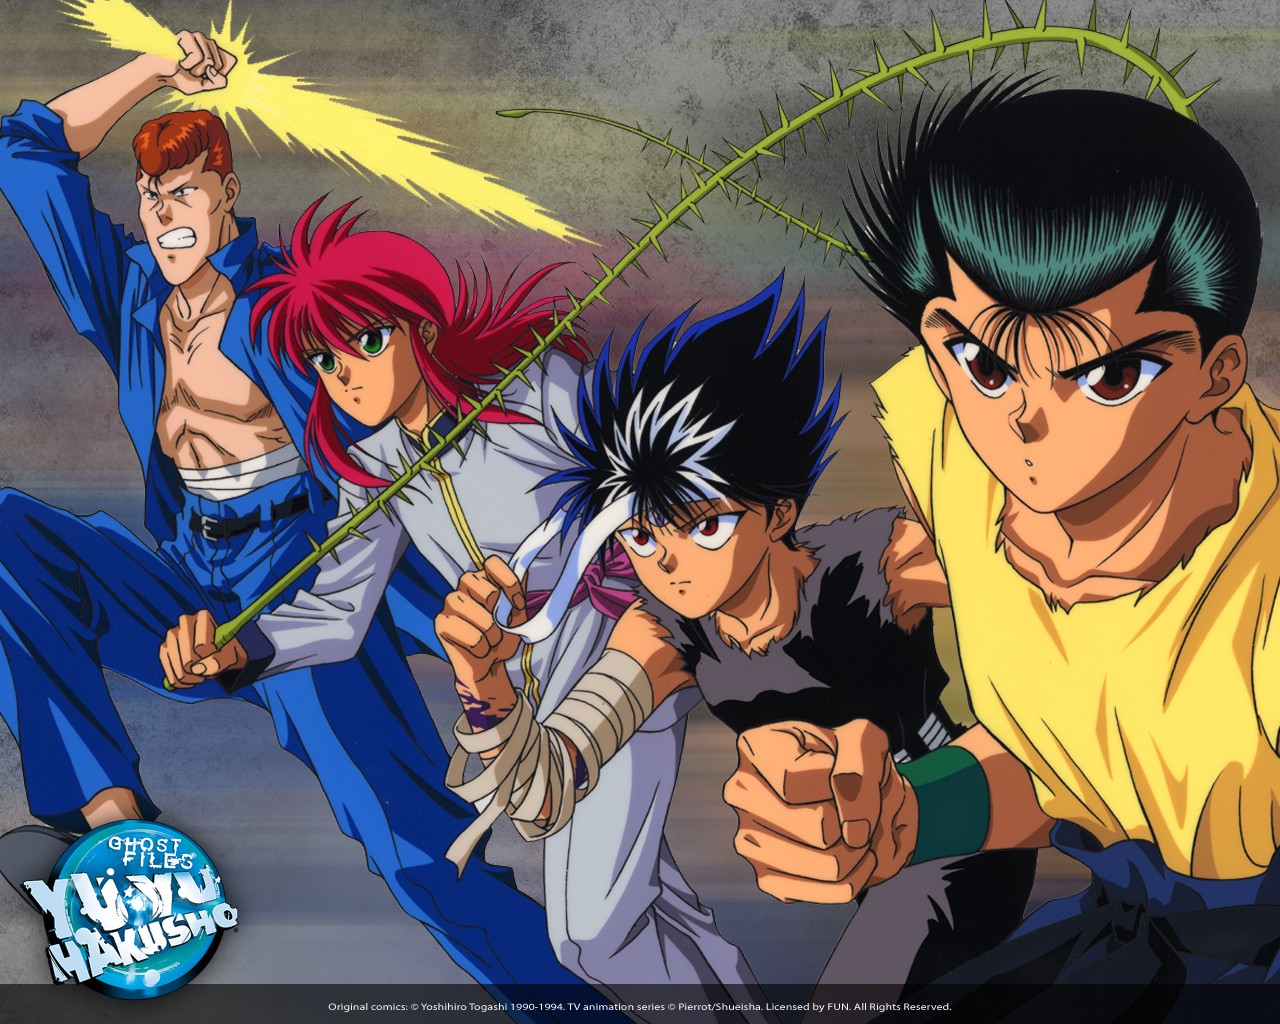 Which yu yu hakusho character would have sex with